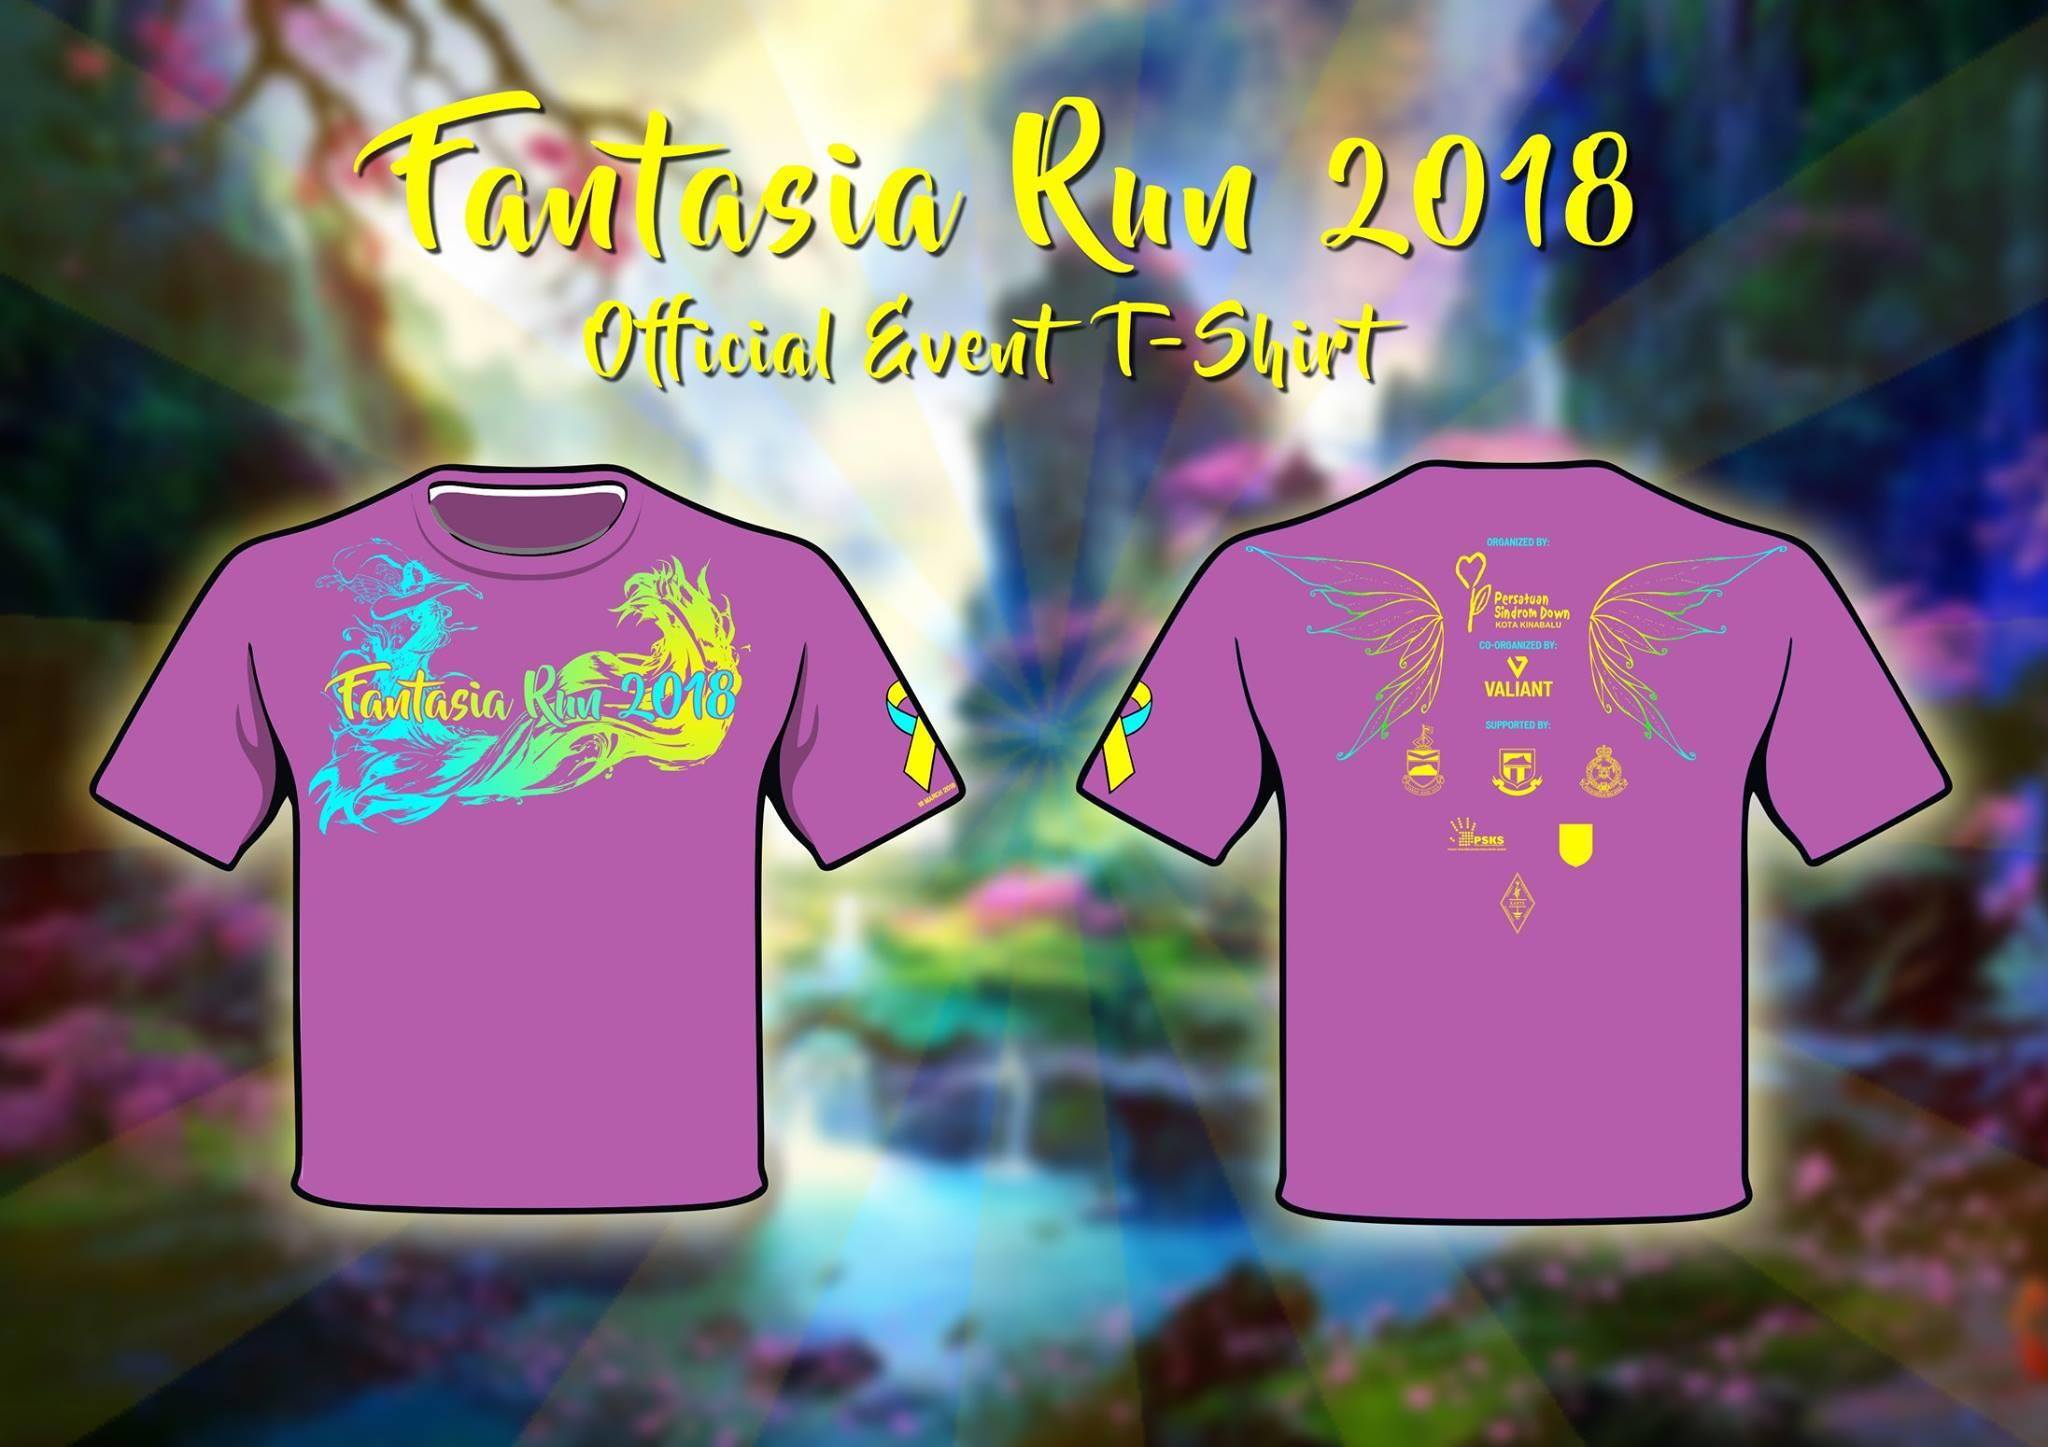 Fantasia Run 2018